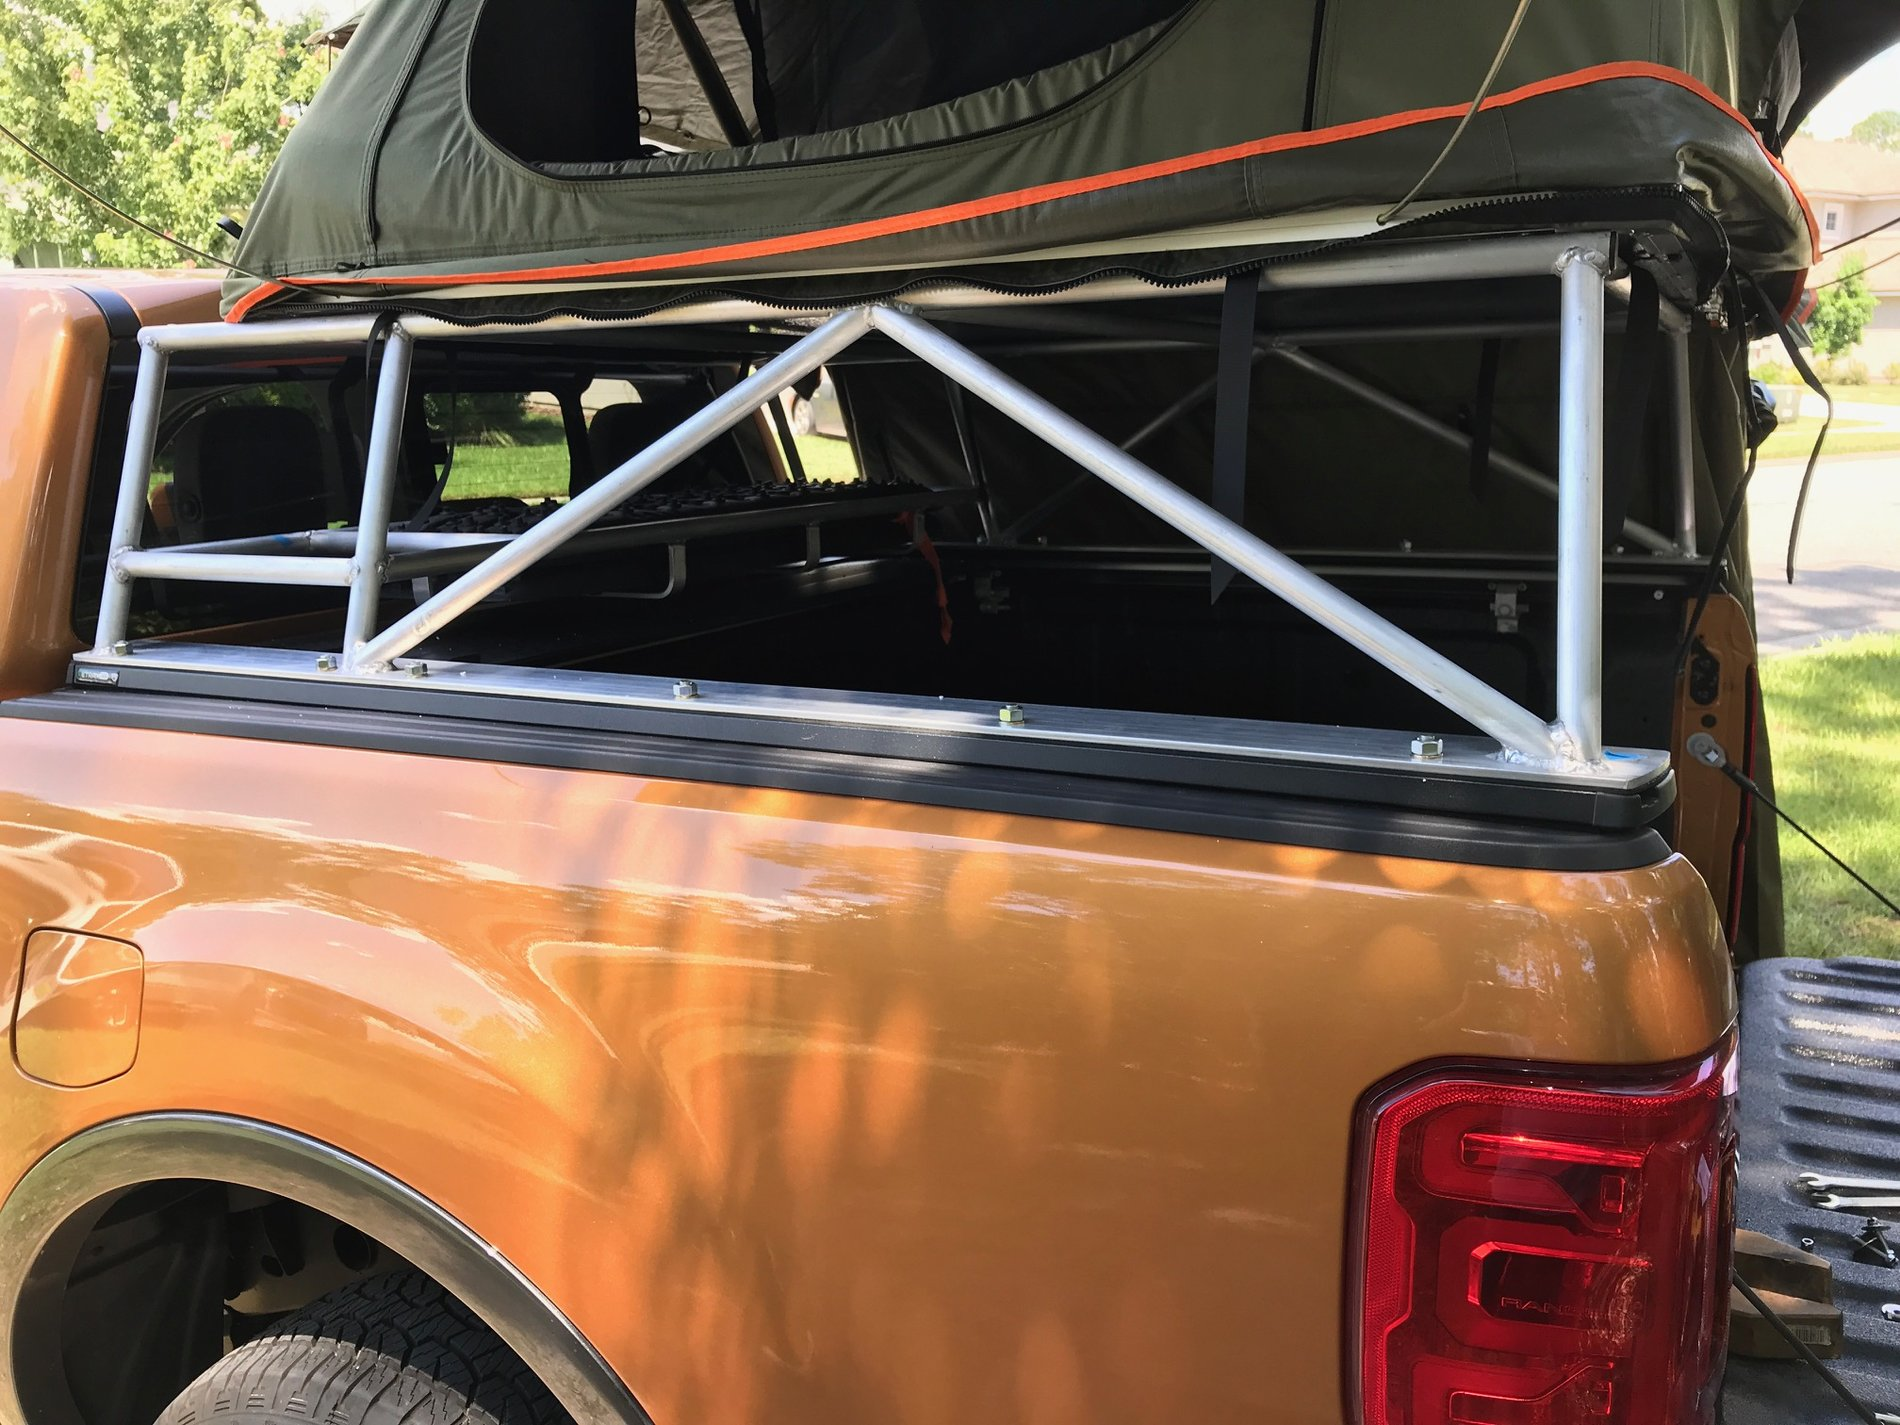 Custom Bed Rack And Rooftop Tent 2019 Ford Ranger And Raptor Forum 5th Generation Ranger5g Com